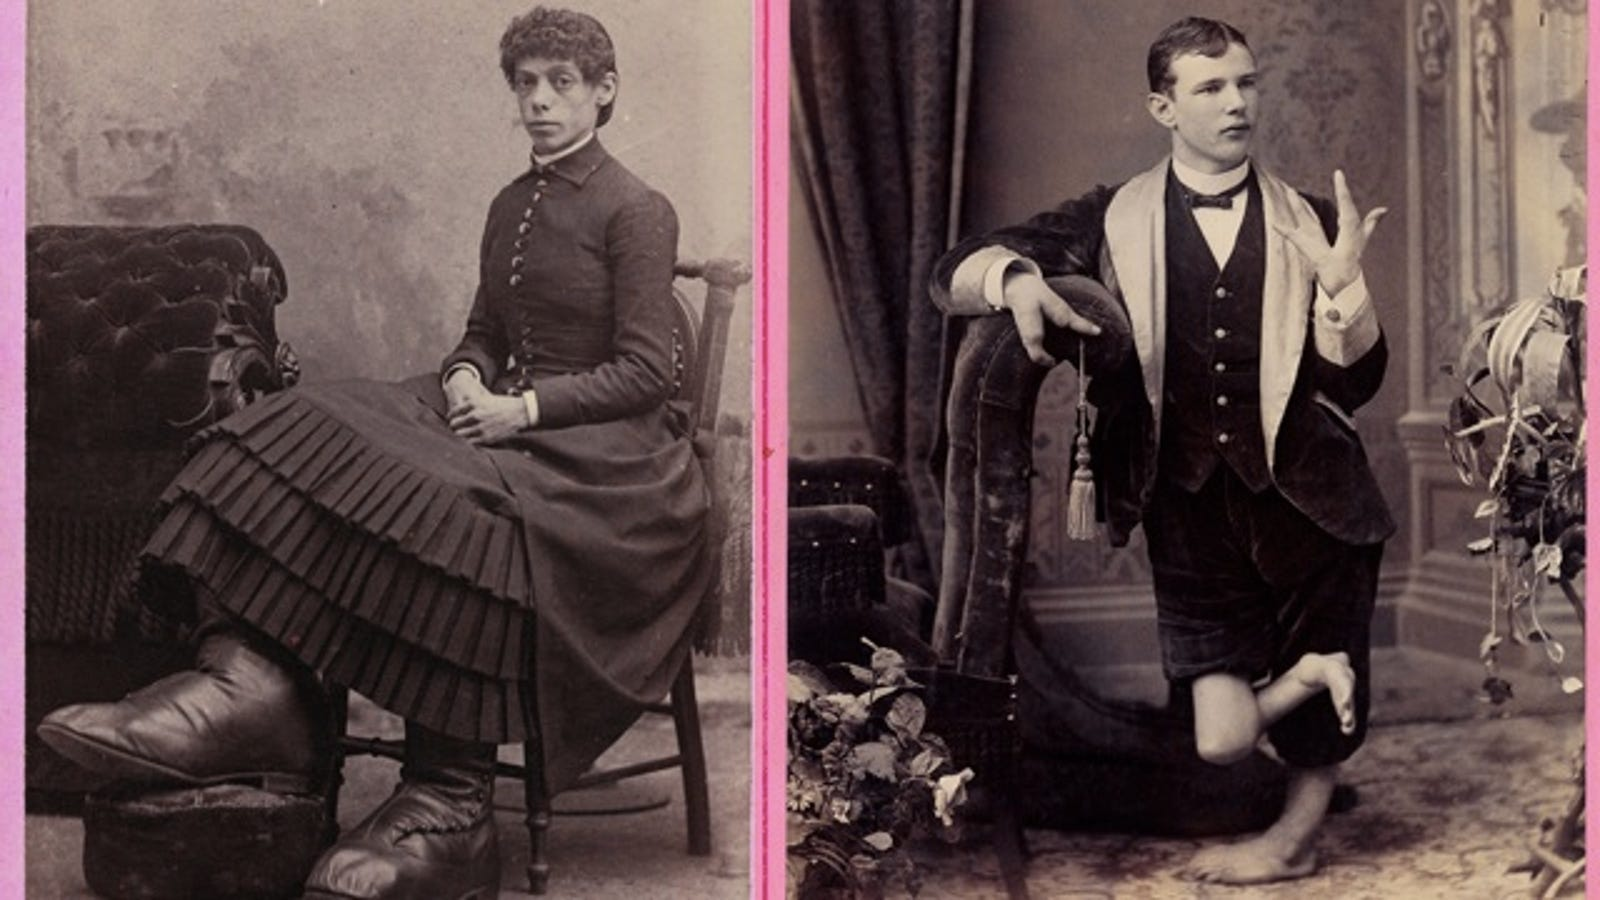 Glamour Shots Of Carnival Freaks Of The 1800s Were Oddly Touching